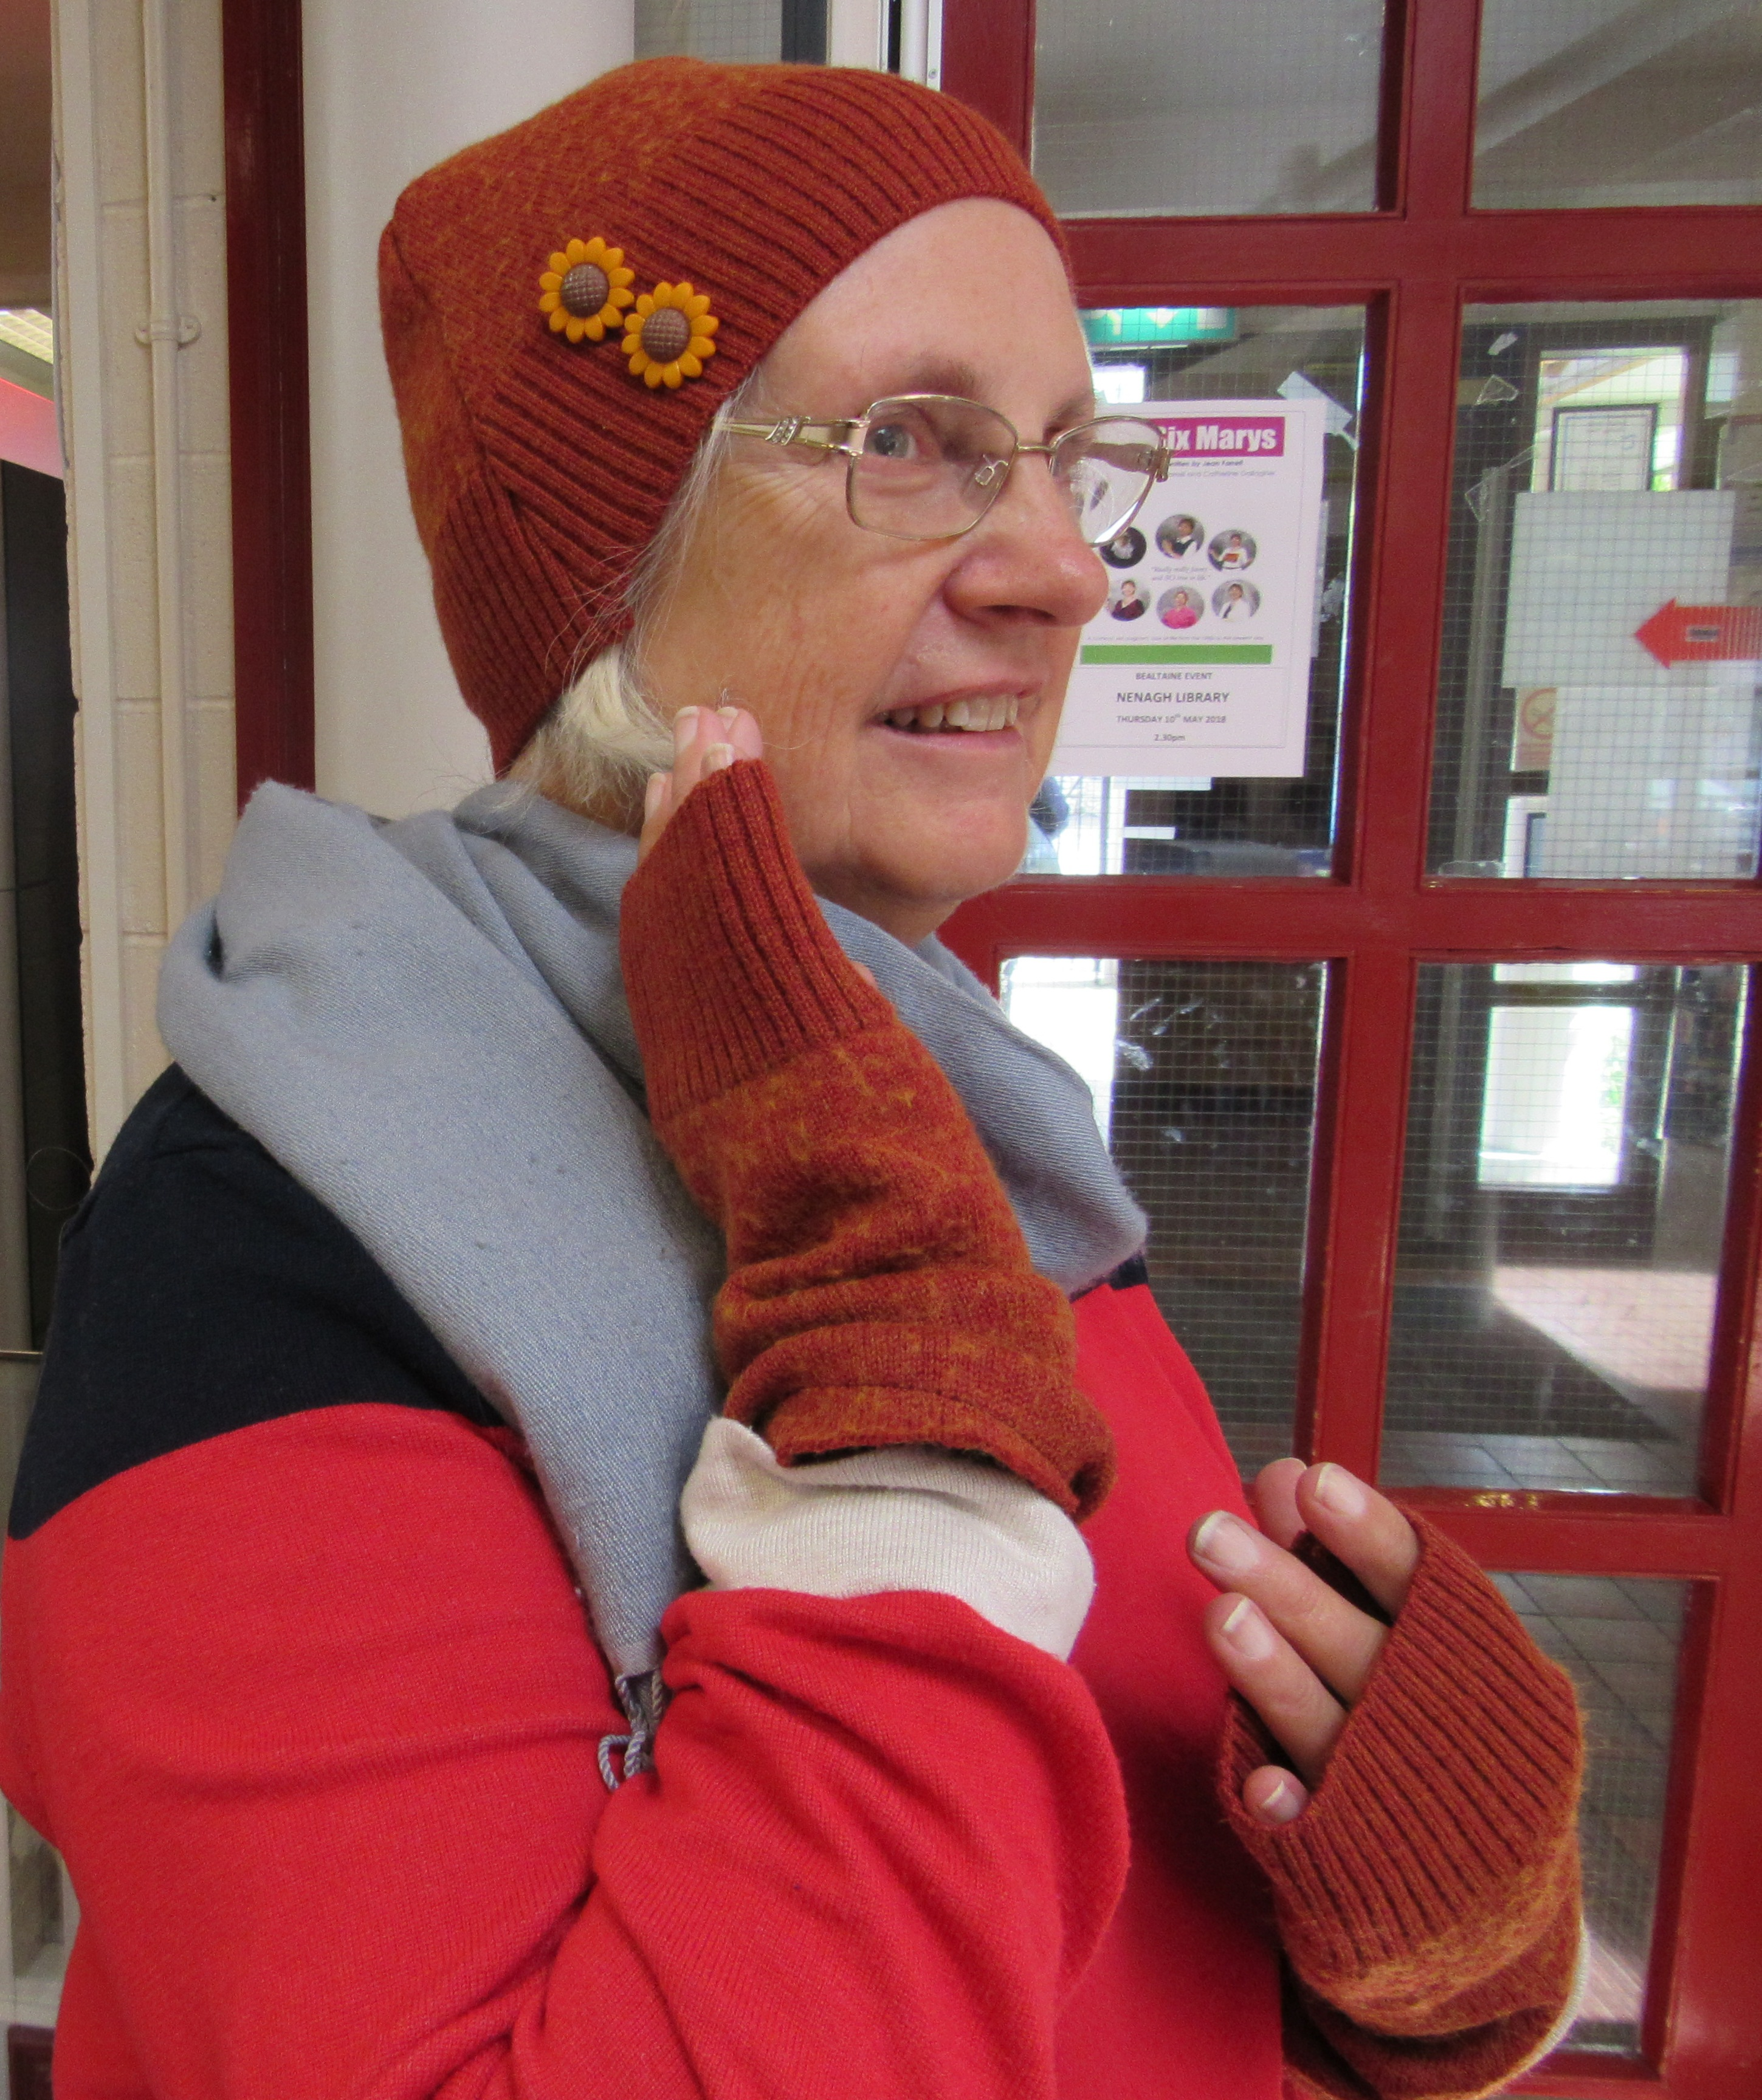 Breda Kennedy Looking Good In Her Upcycled Hat And Gloves!